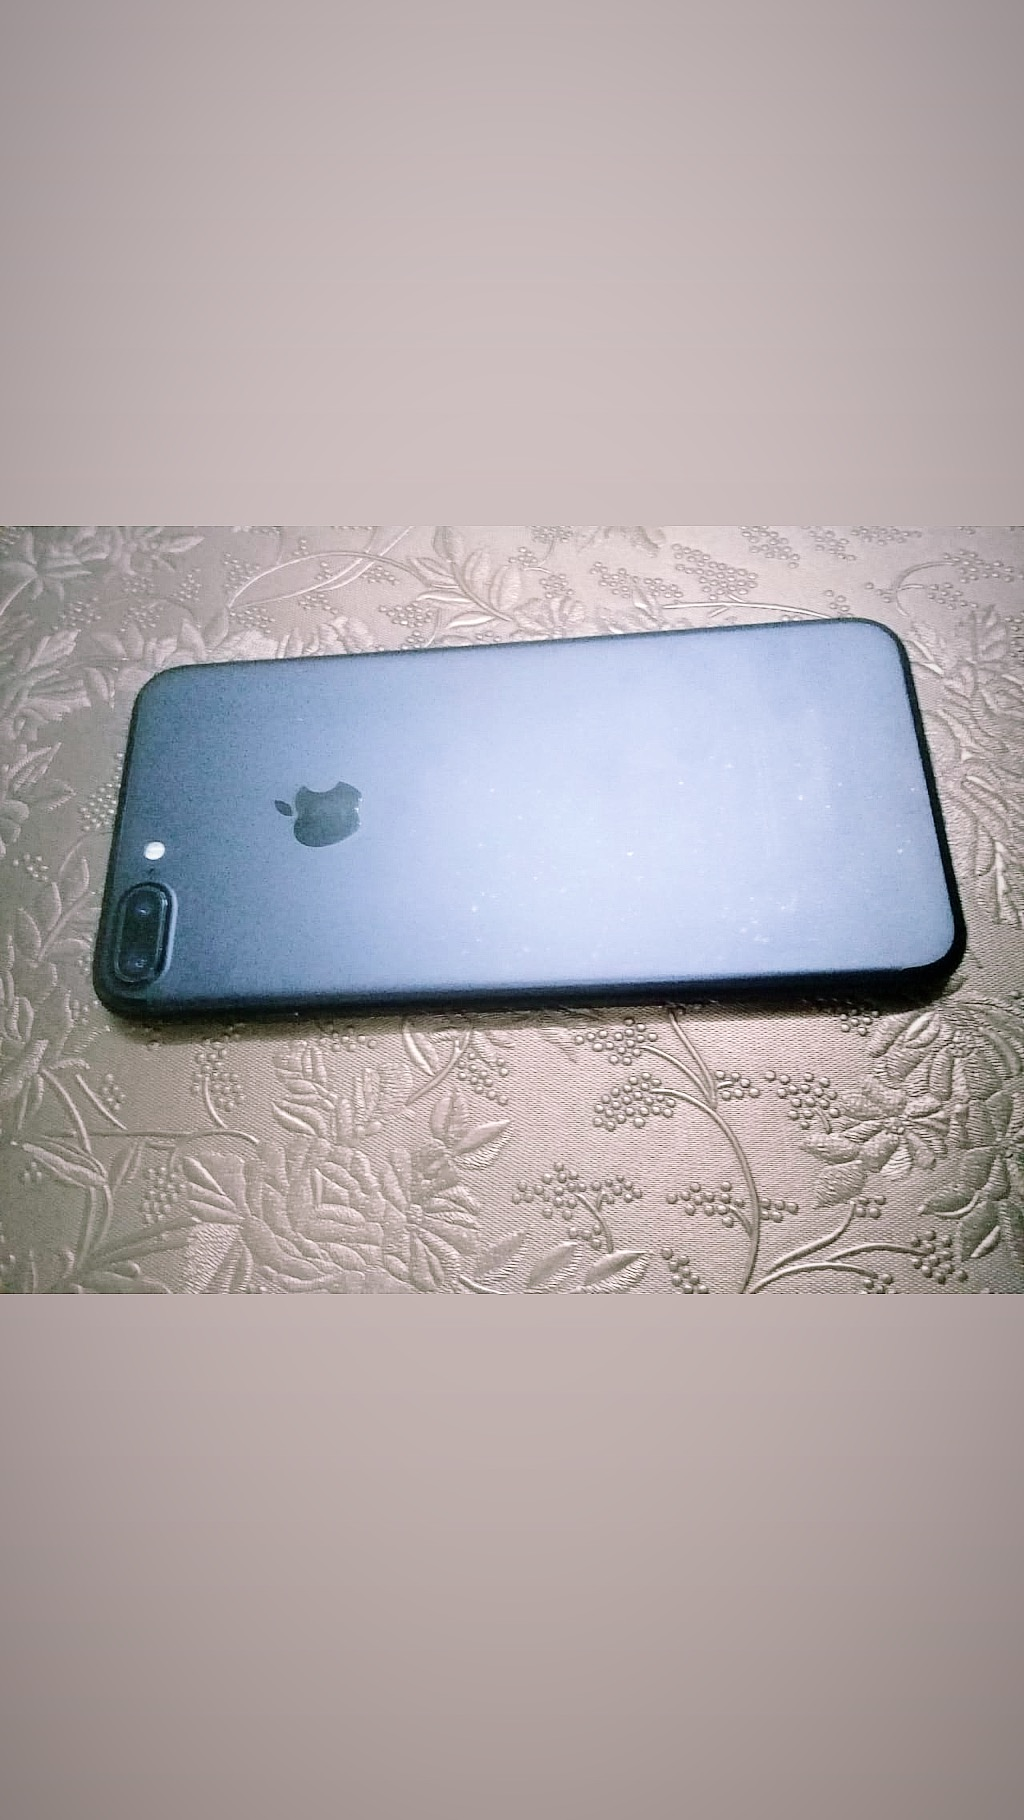 Iphone 7 plus with complete box - photo 4